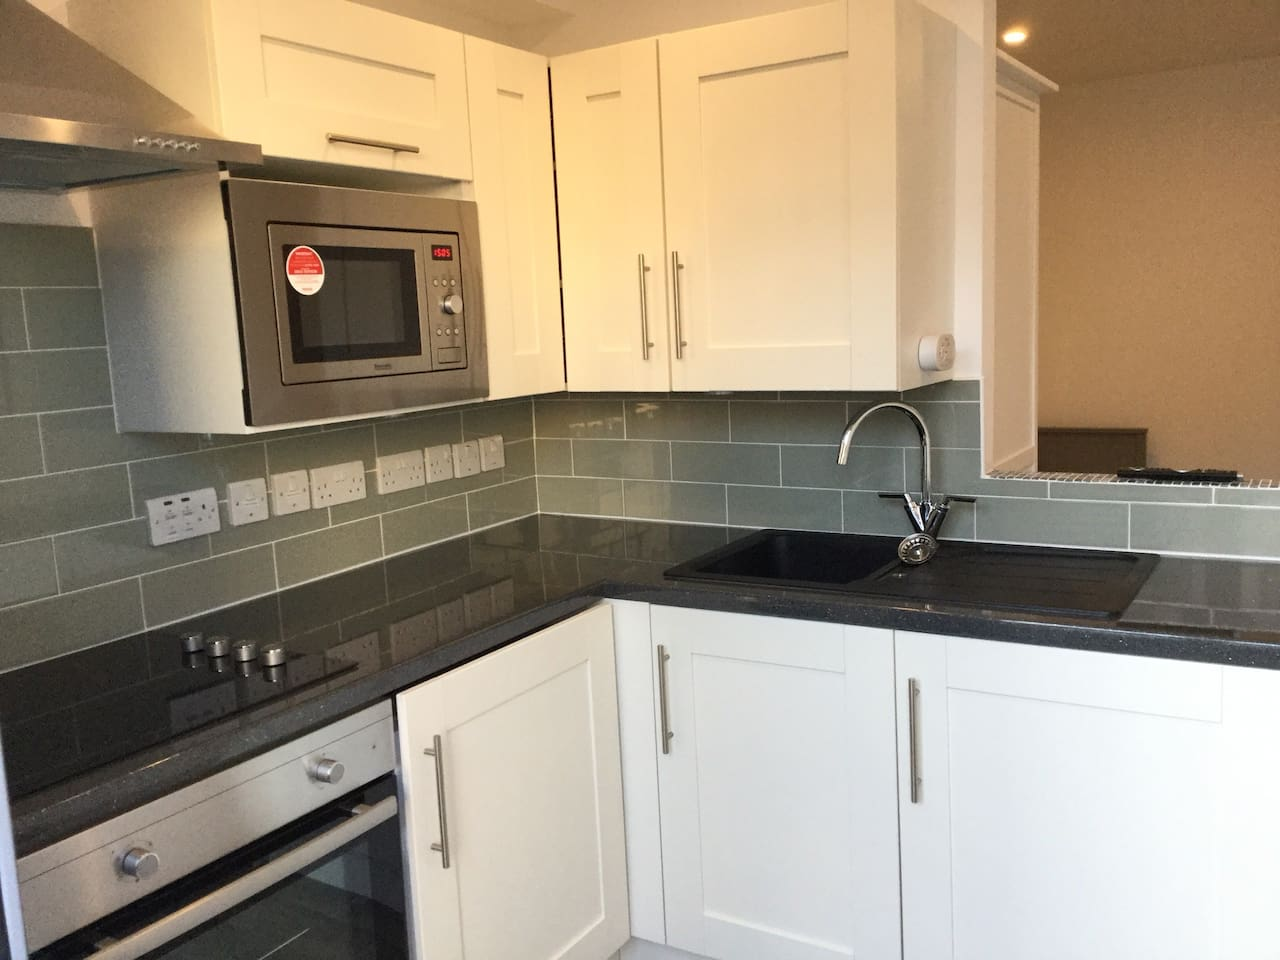 Stylish brand new kitchen including all mod cons. Electric hob & oven, built-in microwave, fridge & washing machine. Carbon dioxide monitor erected although Studio is all electric !